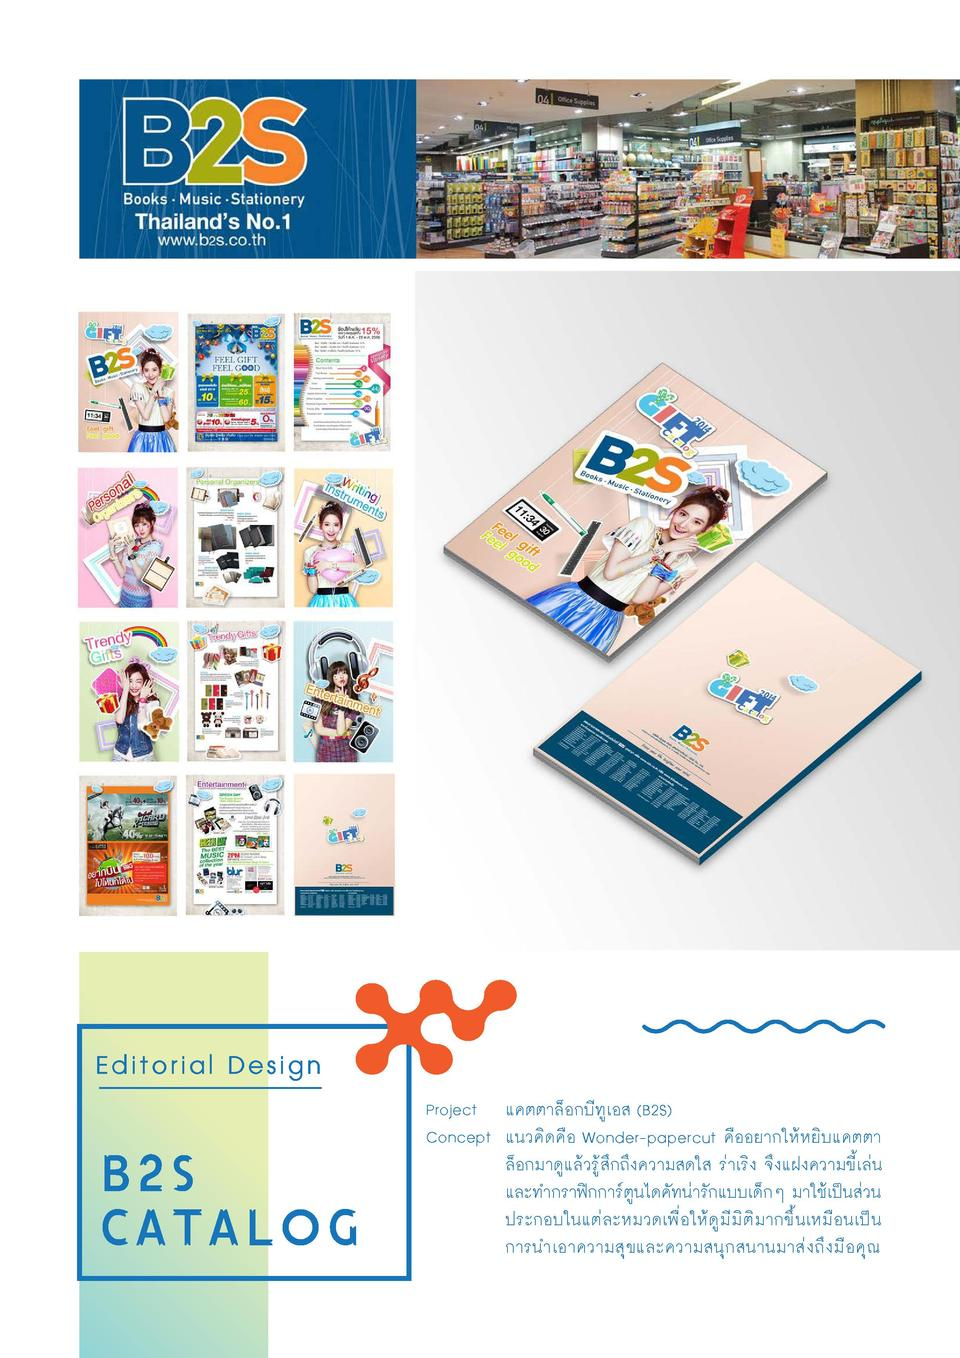 Editorial Design  b2s catalog  Project                                                   B2S  Concept                     ...